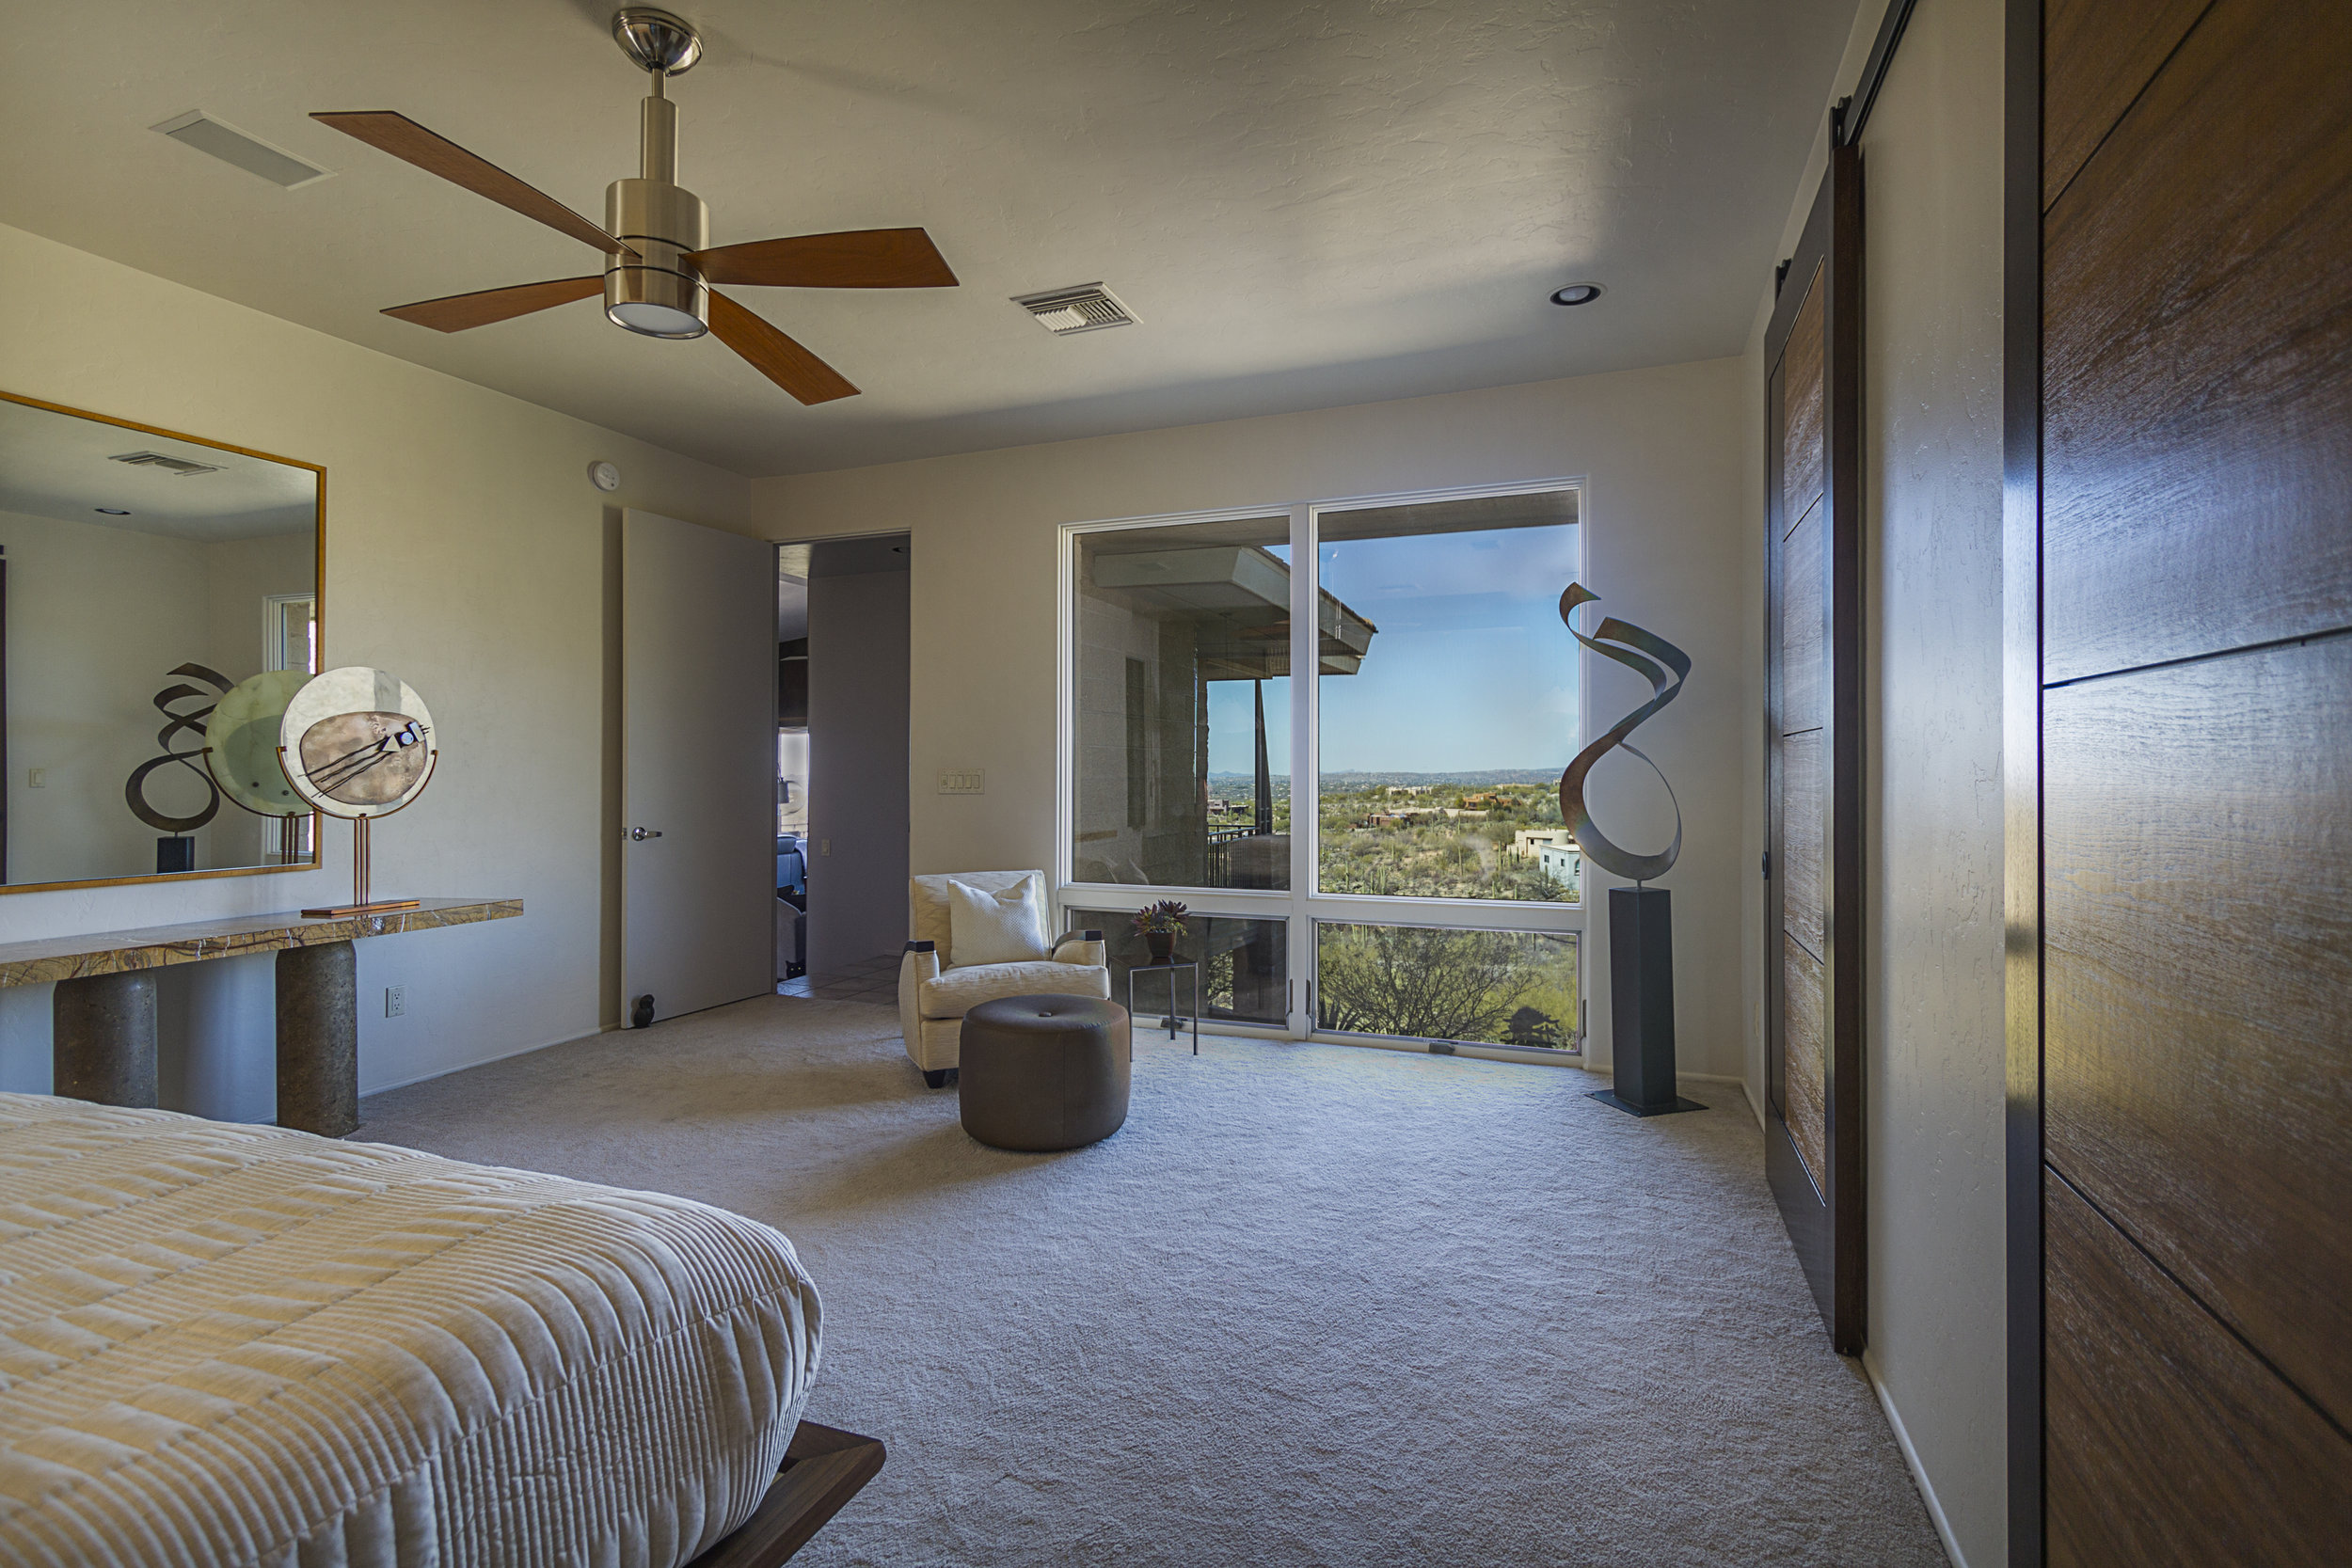 The new windows more than double the amount of glass and view, filling  the Master Bedroom with natural light and views of the desert landscape  and the mountains beyond.